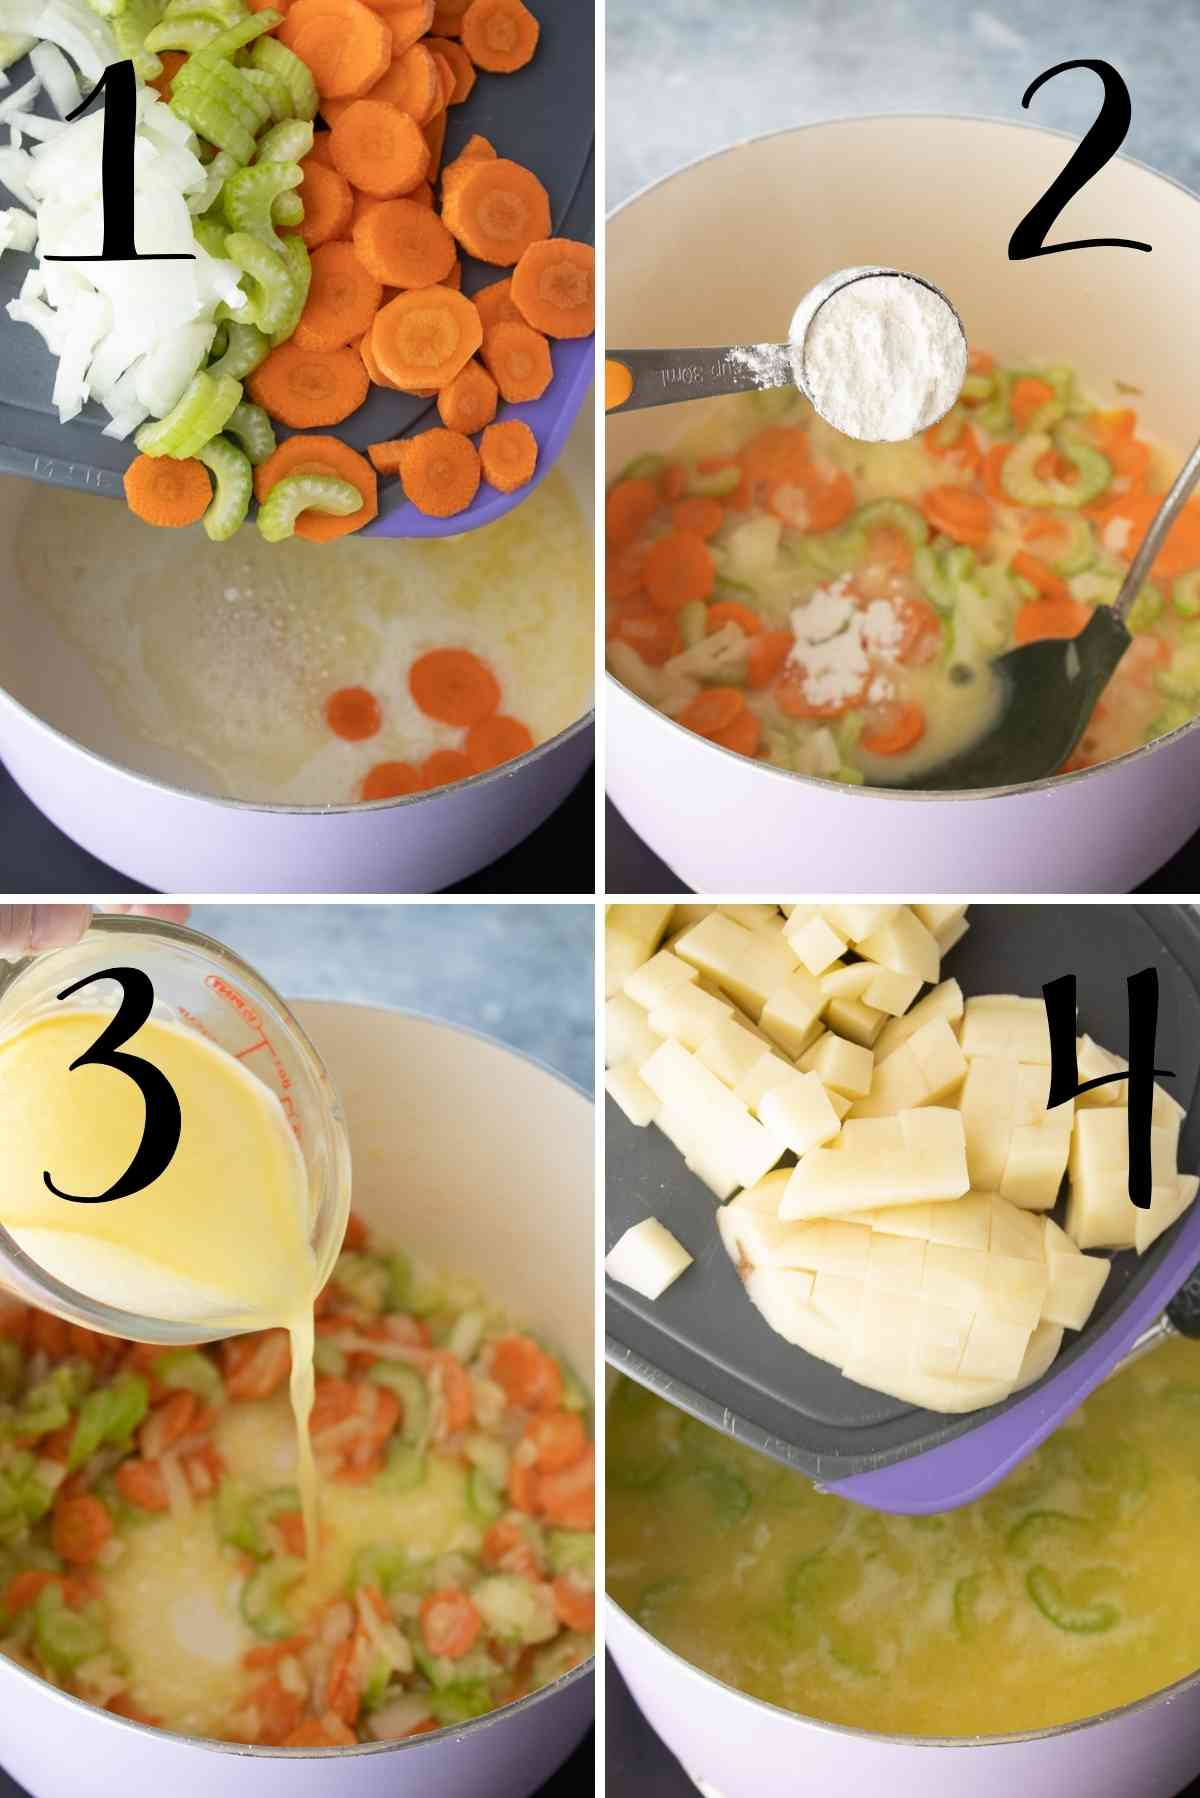 Carrots, celery, onions sauteed in butter, addition of flour followed by broth.